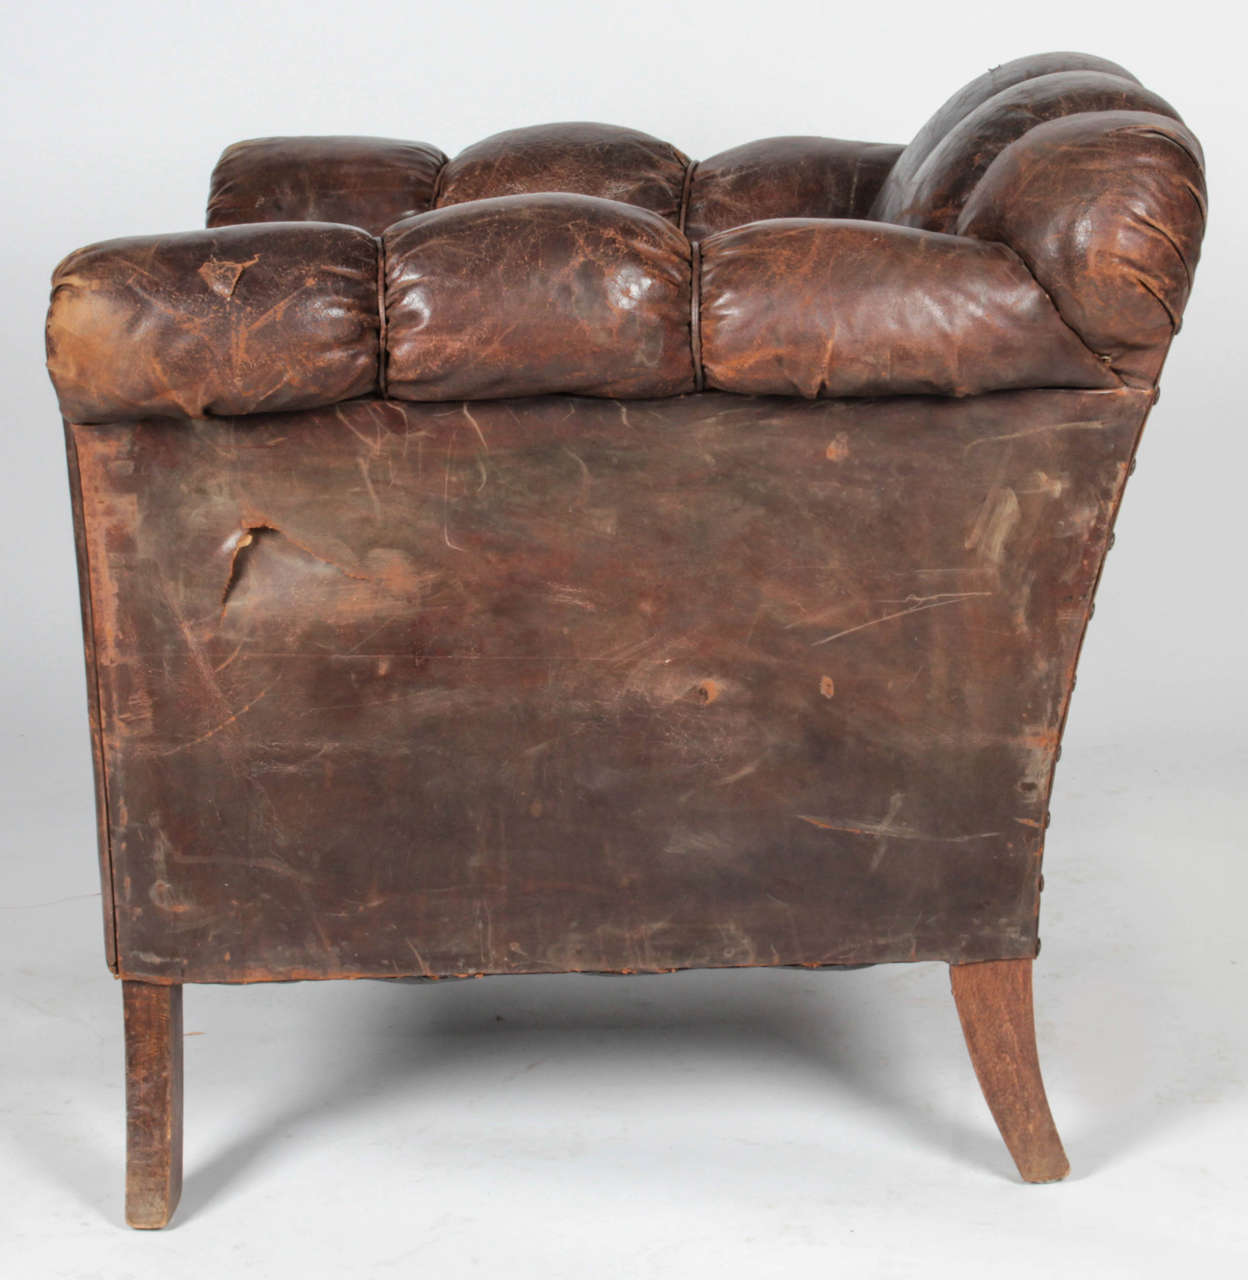 Distressed leather